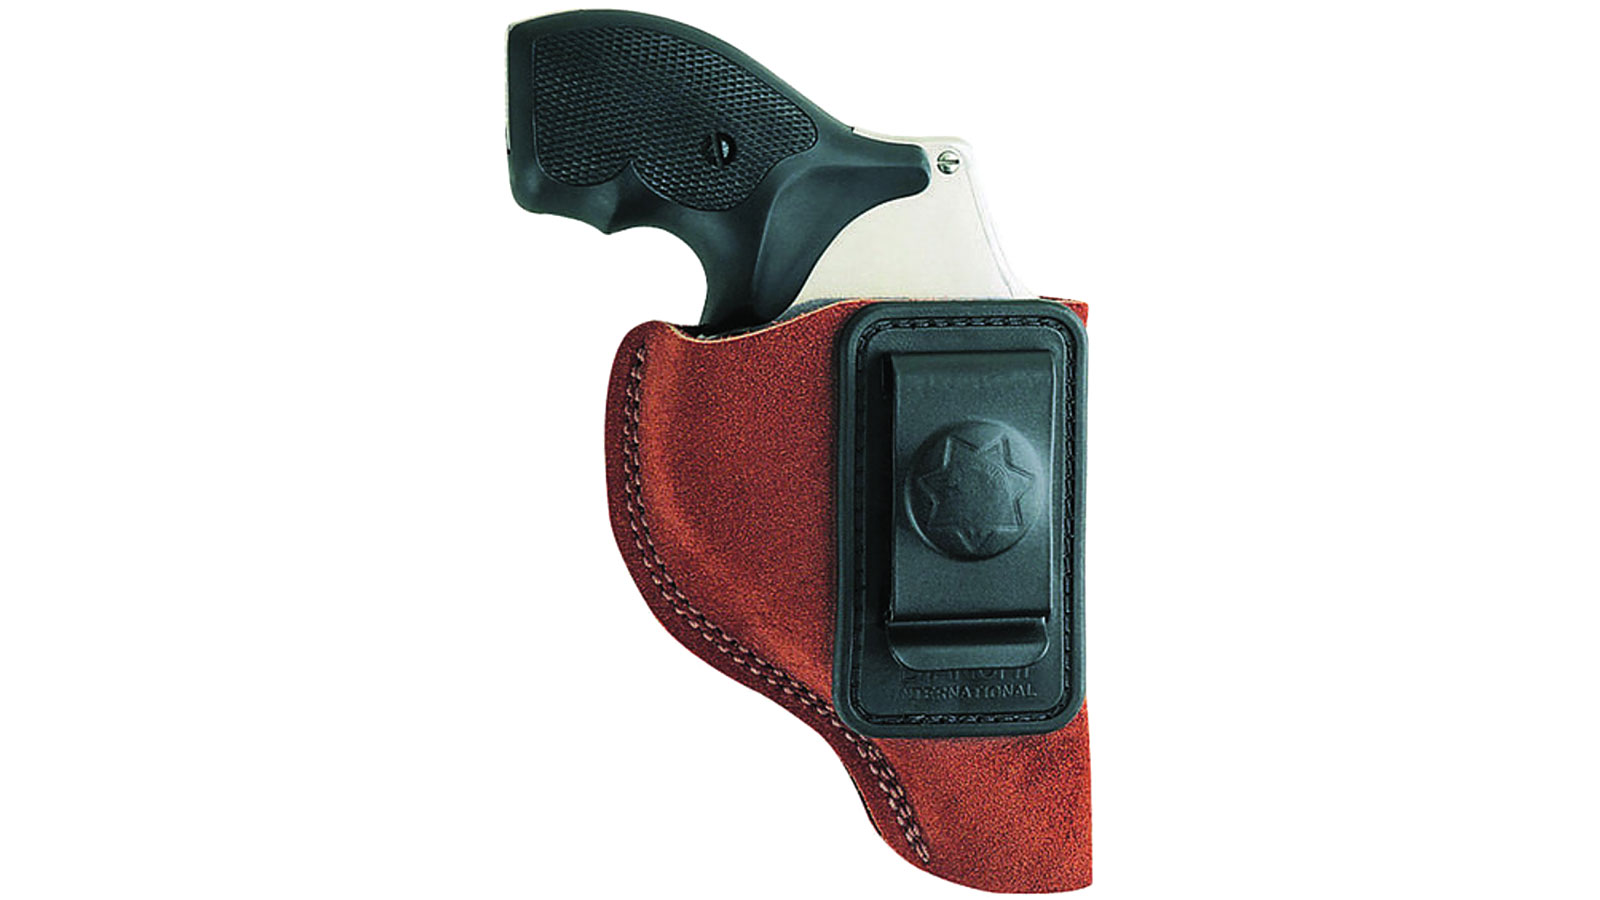 Bianchi 10376 6 Waistband 2-3 Barrel Colt; Ruger; S&W Similar K|L Frame Leather Tan in.